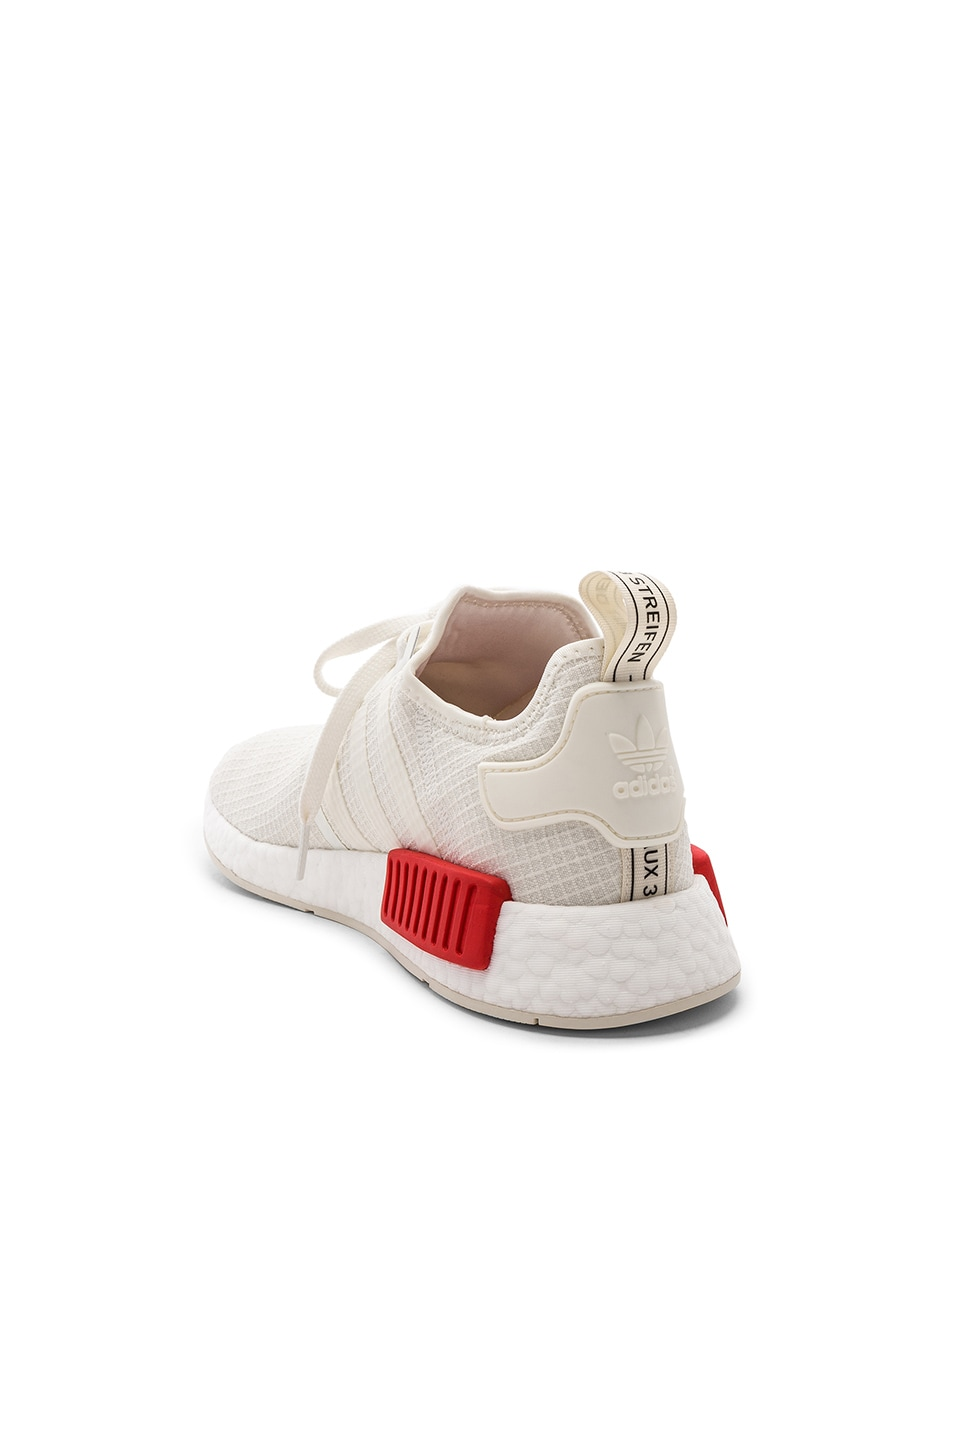 on sale 6b915 c19f5 high-quality adidas Originals NMD R1 Off White & Off White ...